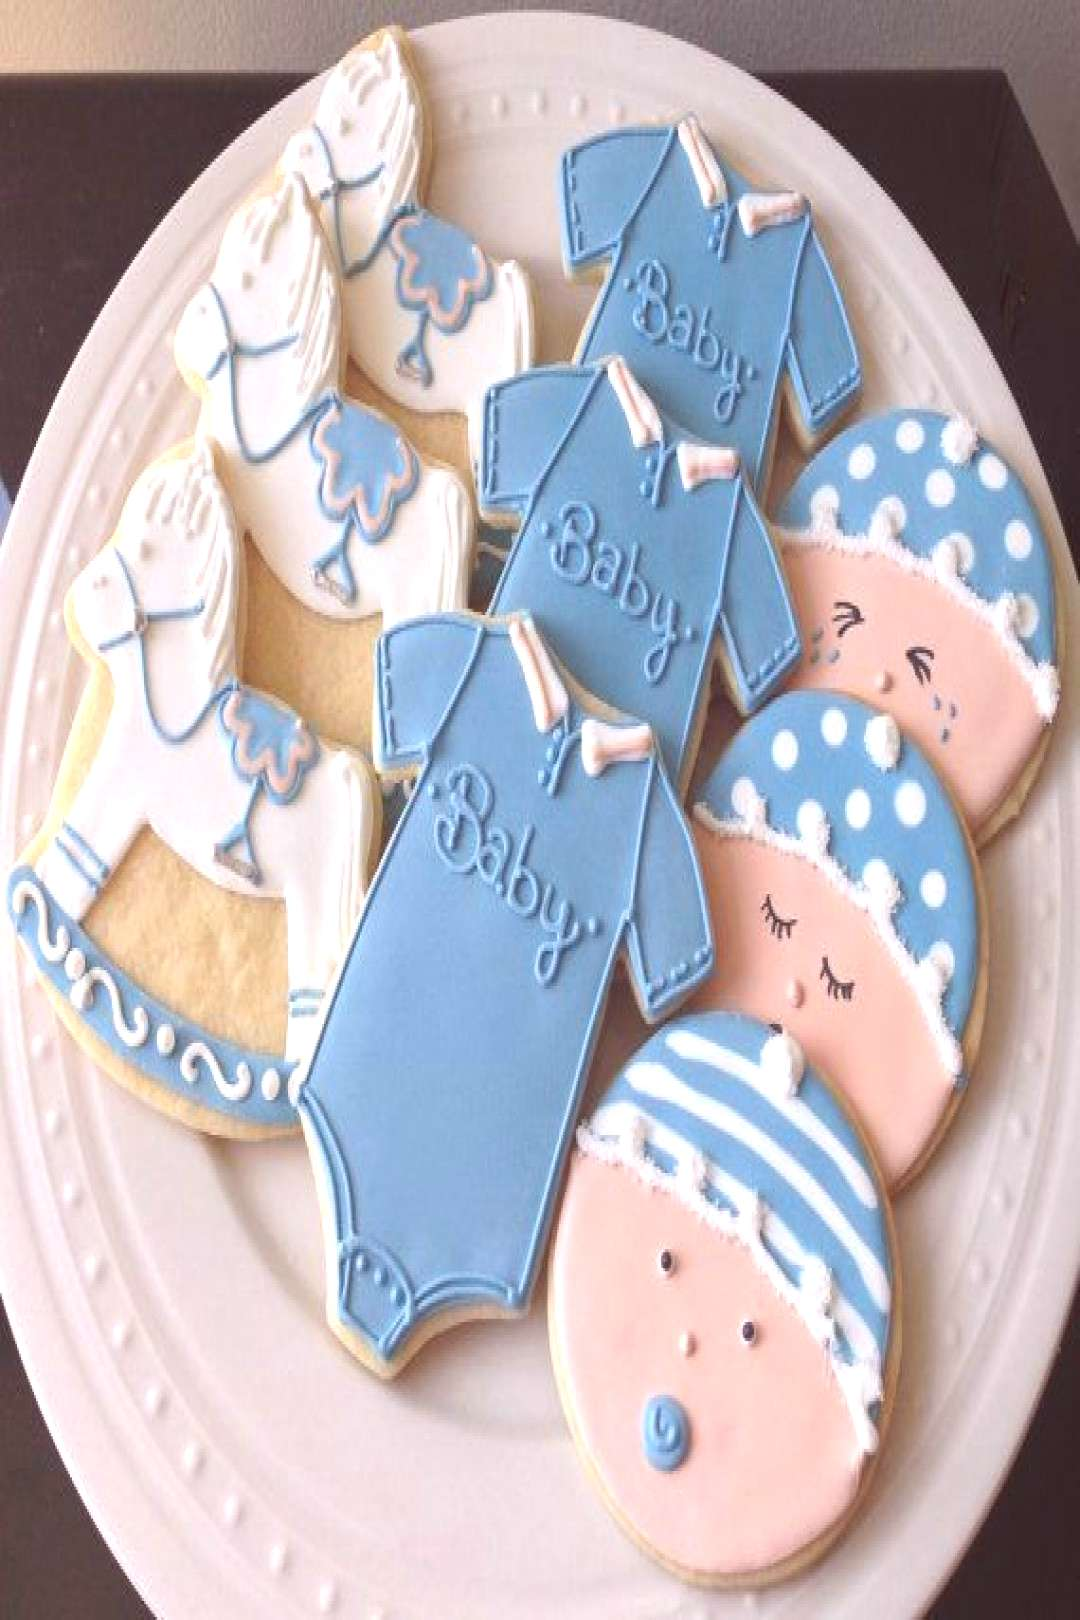 Decorated Baby Shower Cookies- Baby Faces, Onesies and Rocking Horses via Etsy - Decorated Baby Sh